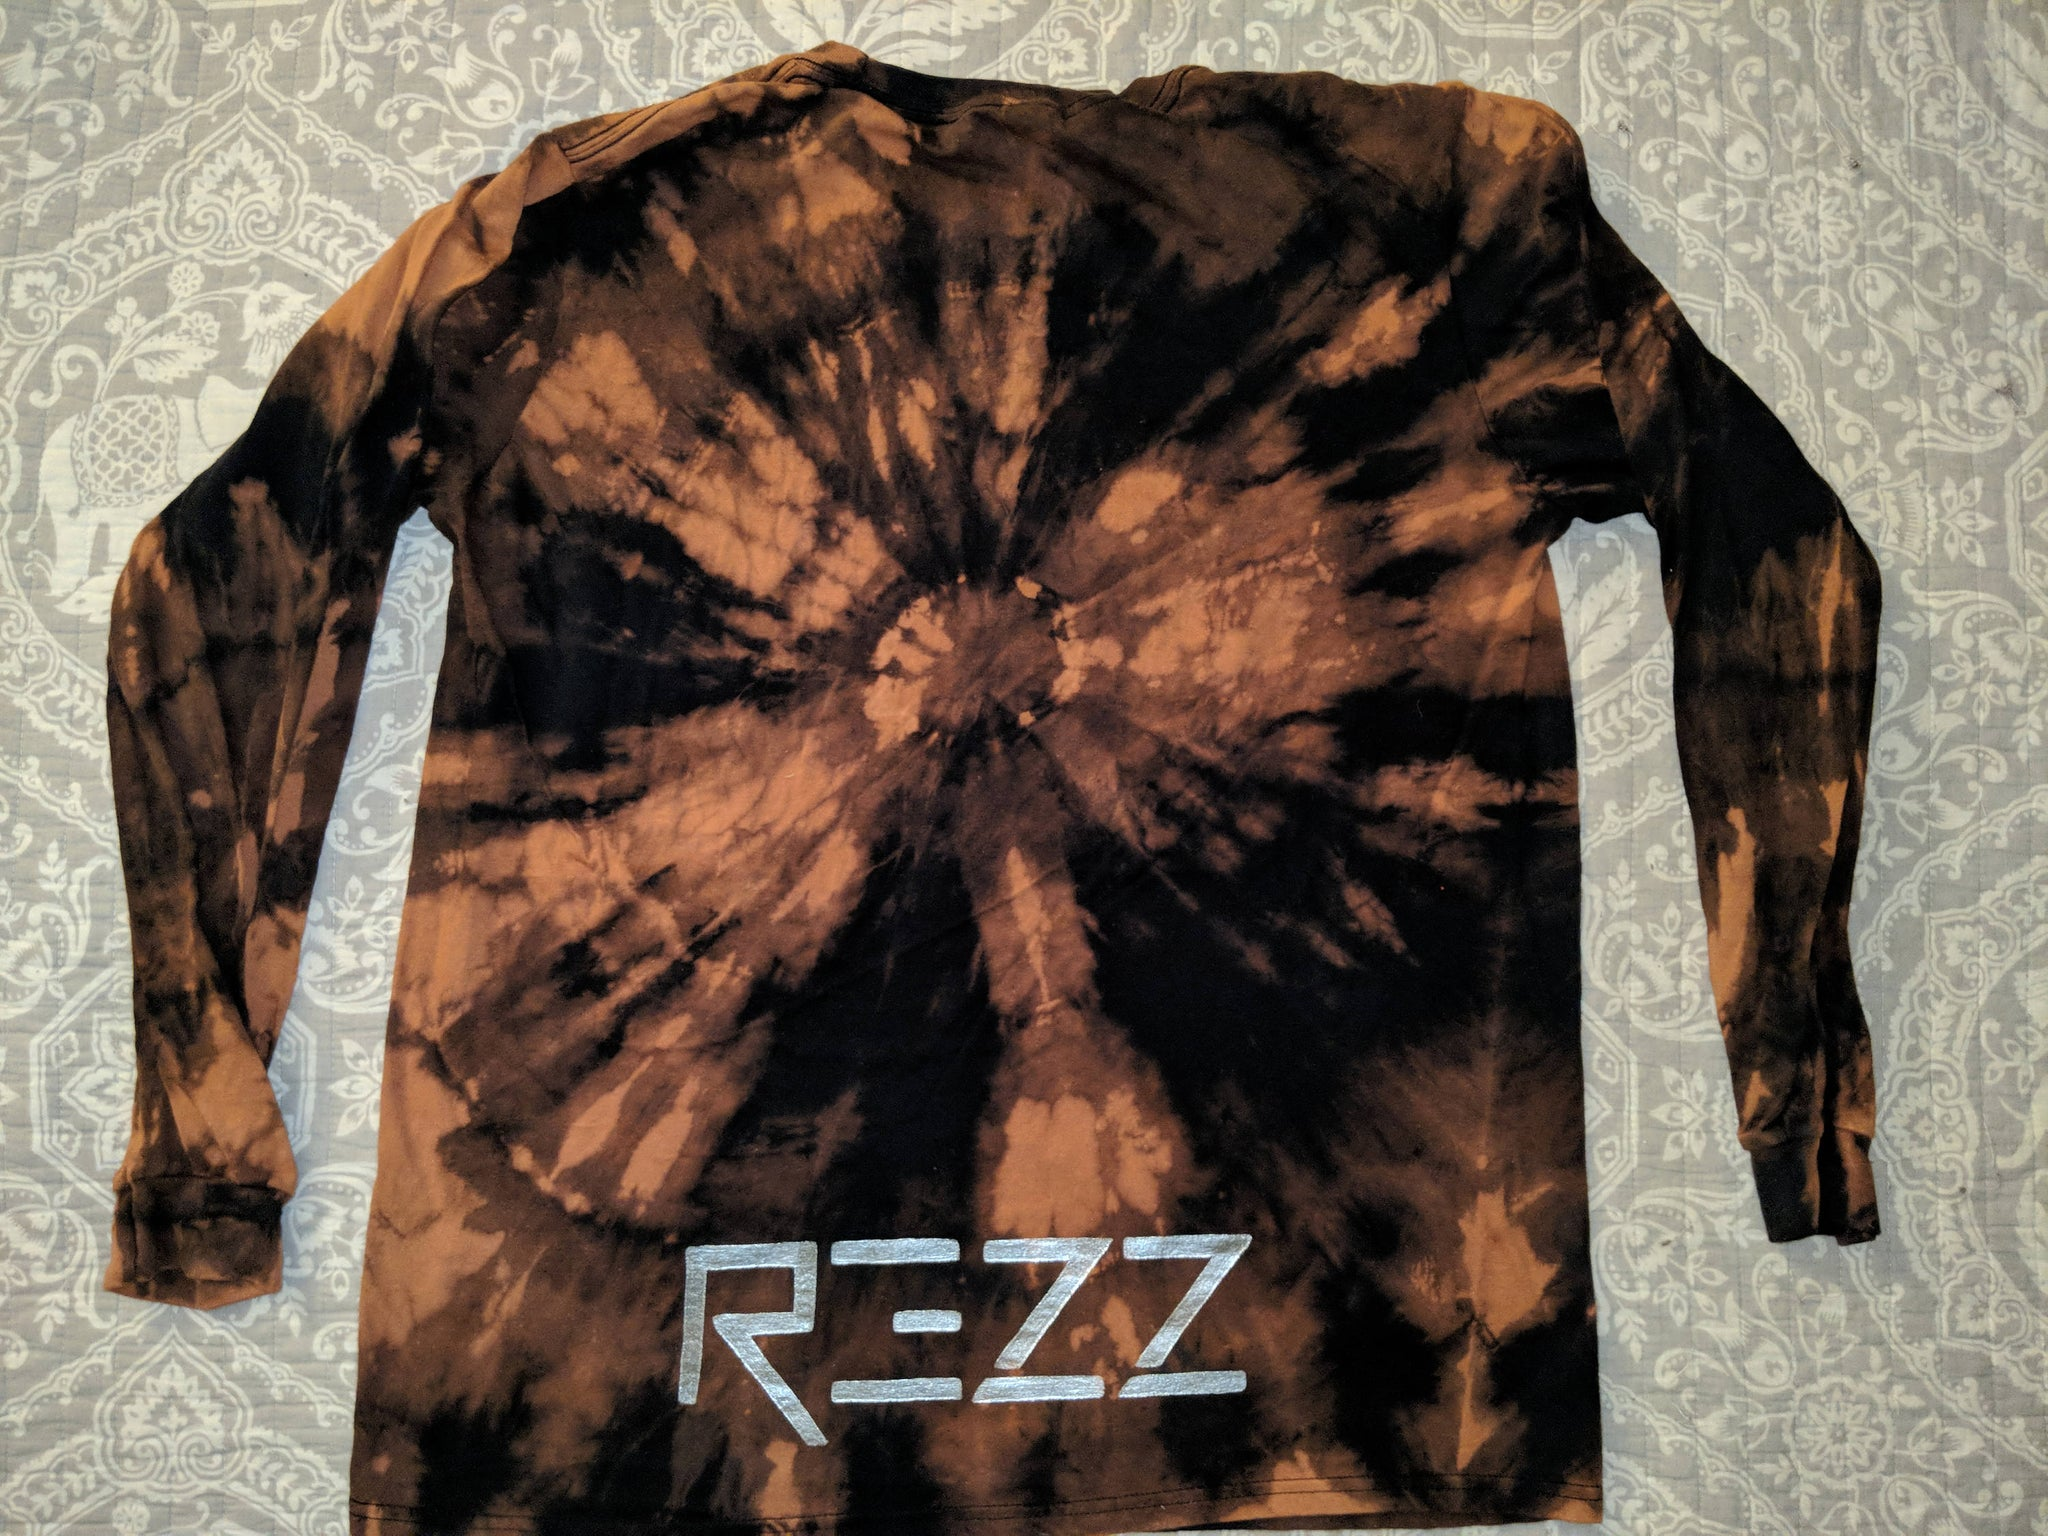 Rezz- Bleached Shirt- Hand & Eye on front, Rezz lower back